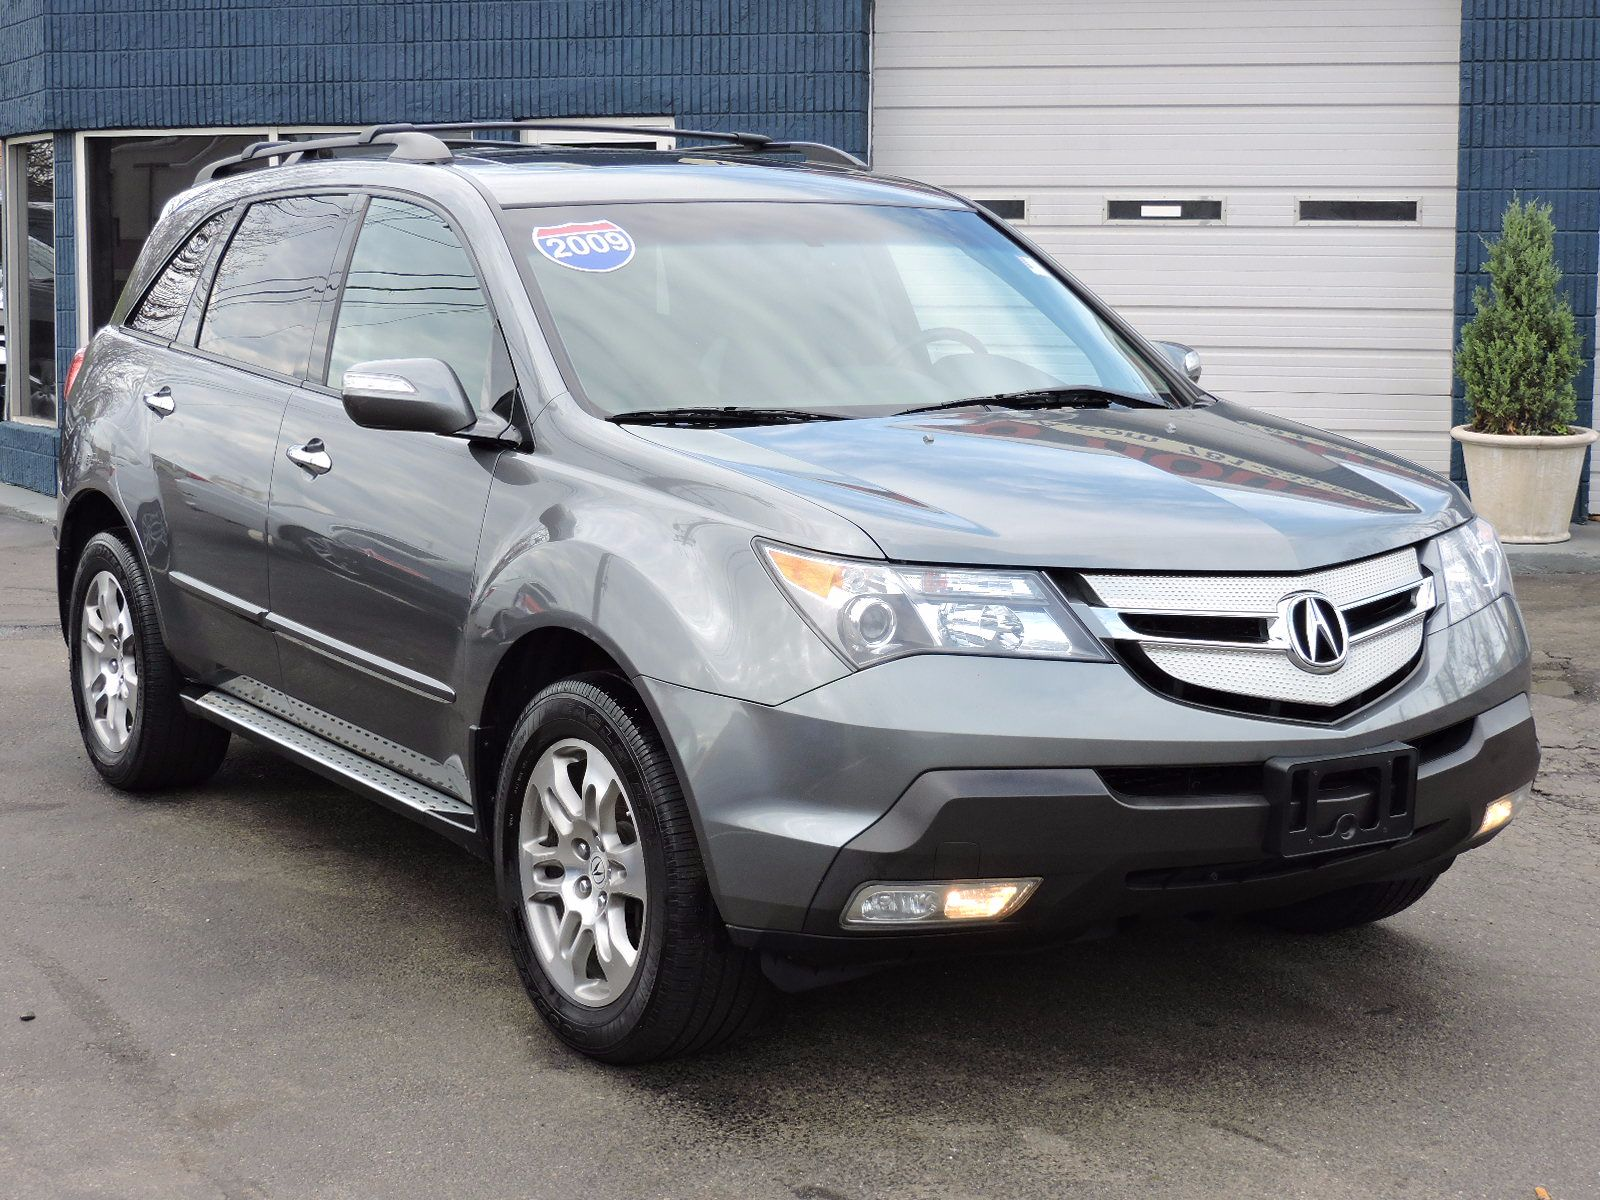 2009 Acura MDX All Wheel Drive - Technology Package - Navigation